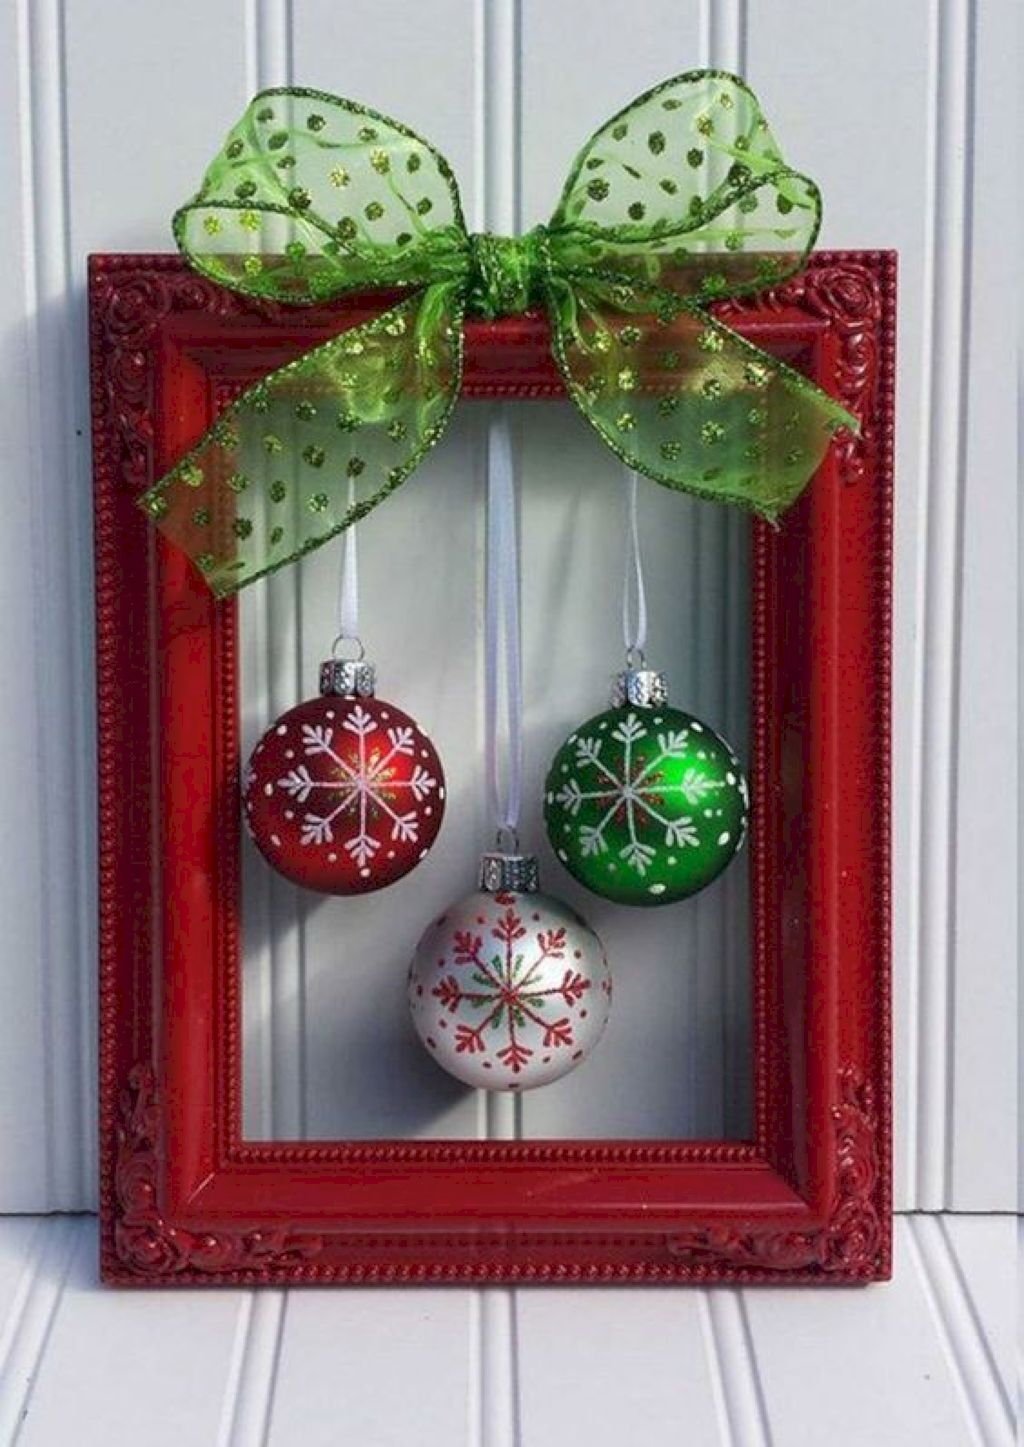 40 Easy DIY Christmas Crafts and Decorations Ideas On a Bugdet - HomeIdeas.co #diychristmasdecor